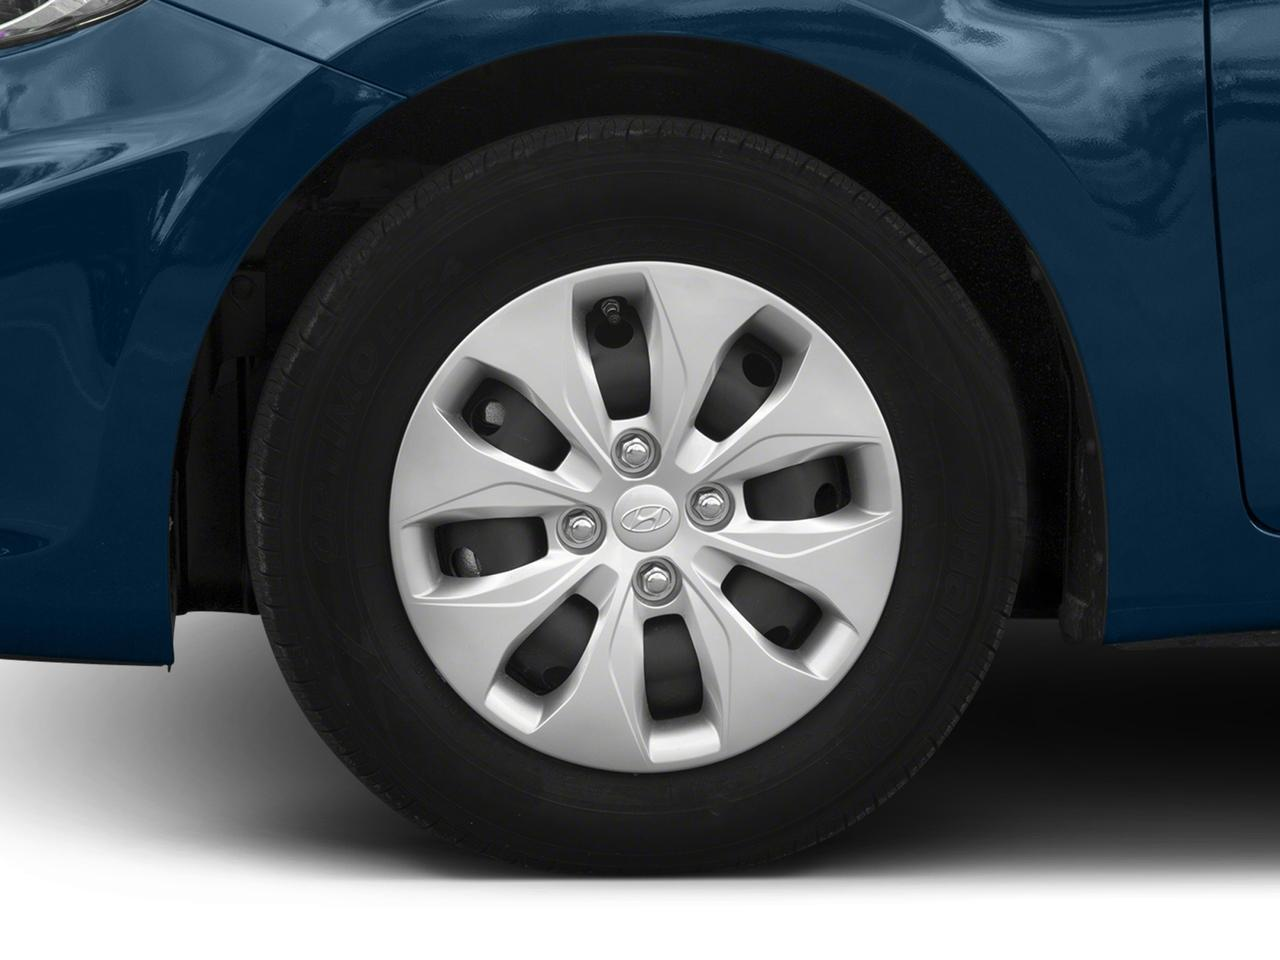 Northpointe Chevrolet - New and Pre-owned Vehicles in Seneca